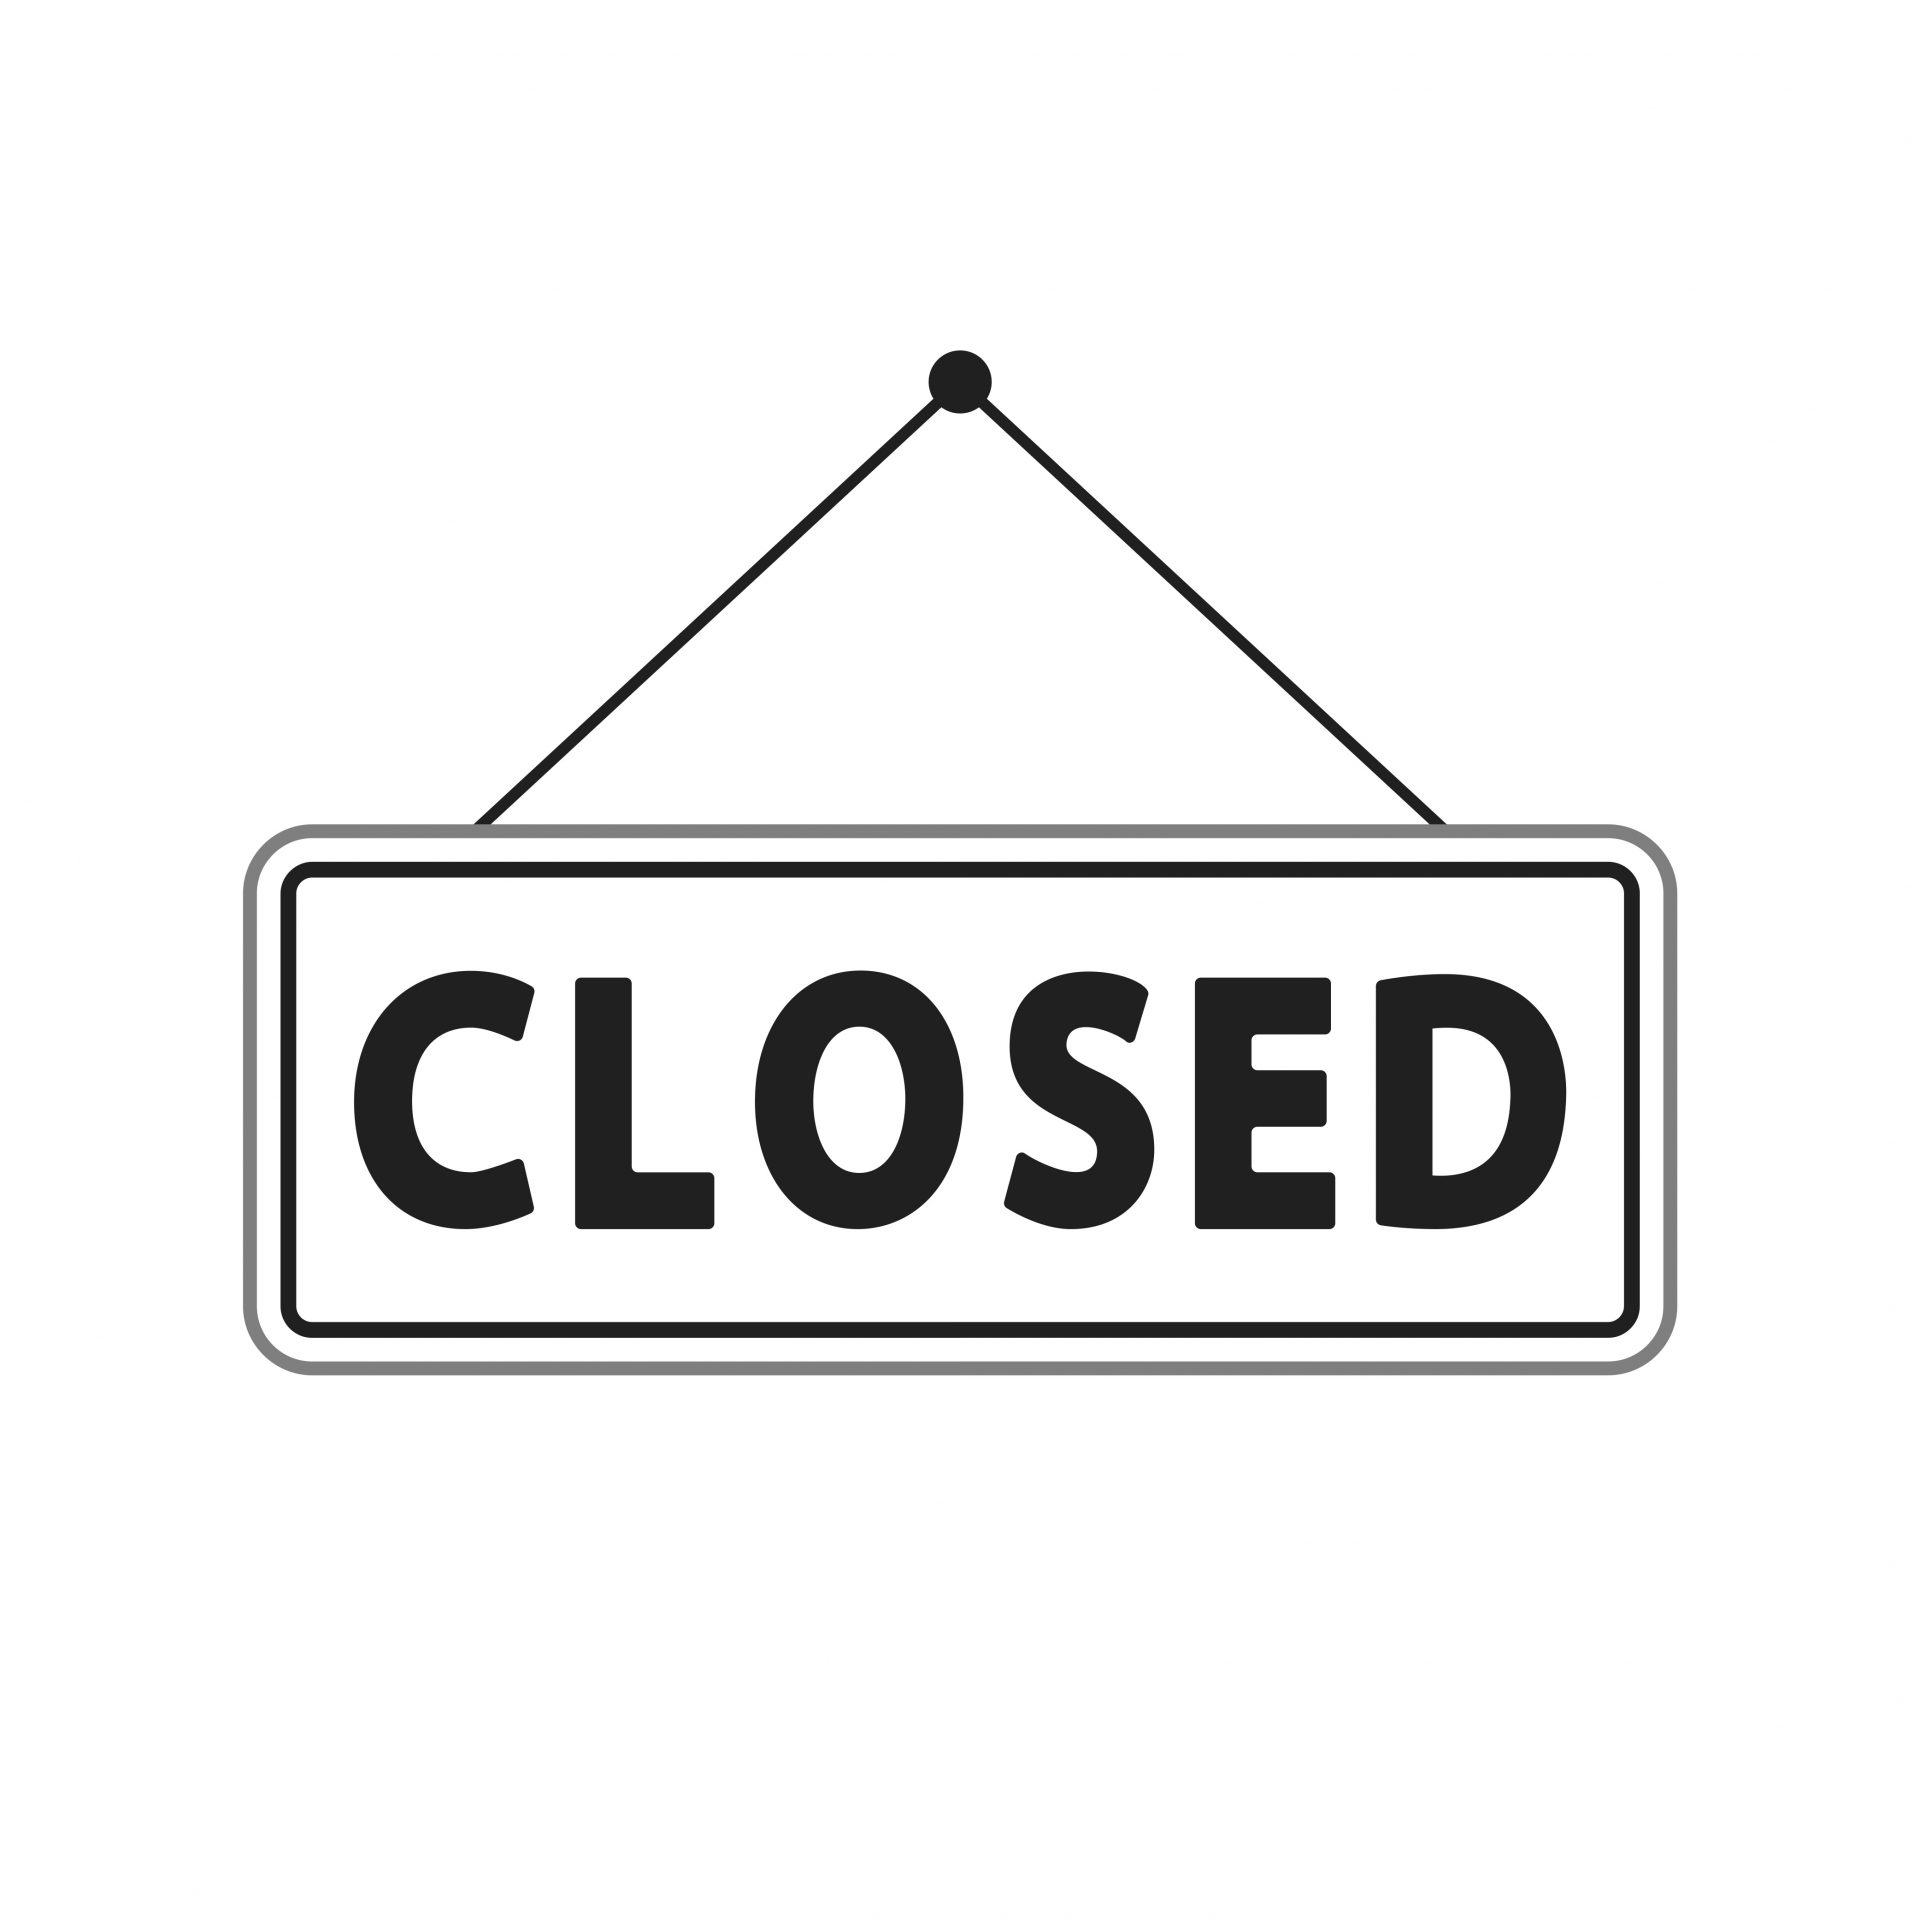 social distance - closed sign - shutterstock_1589773813